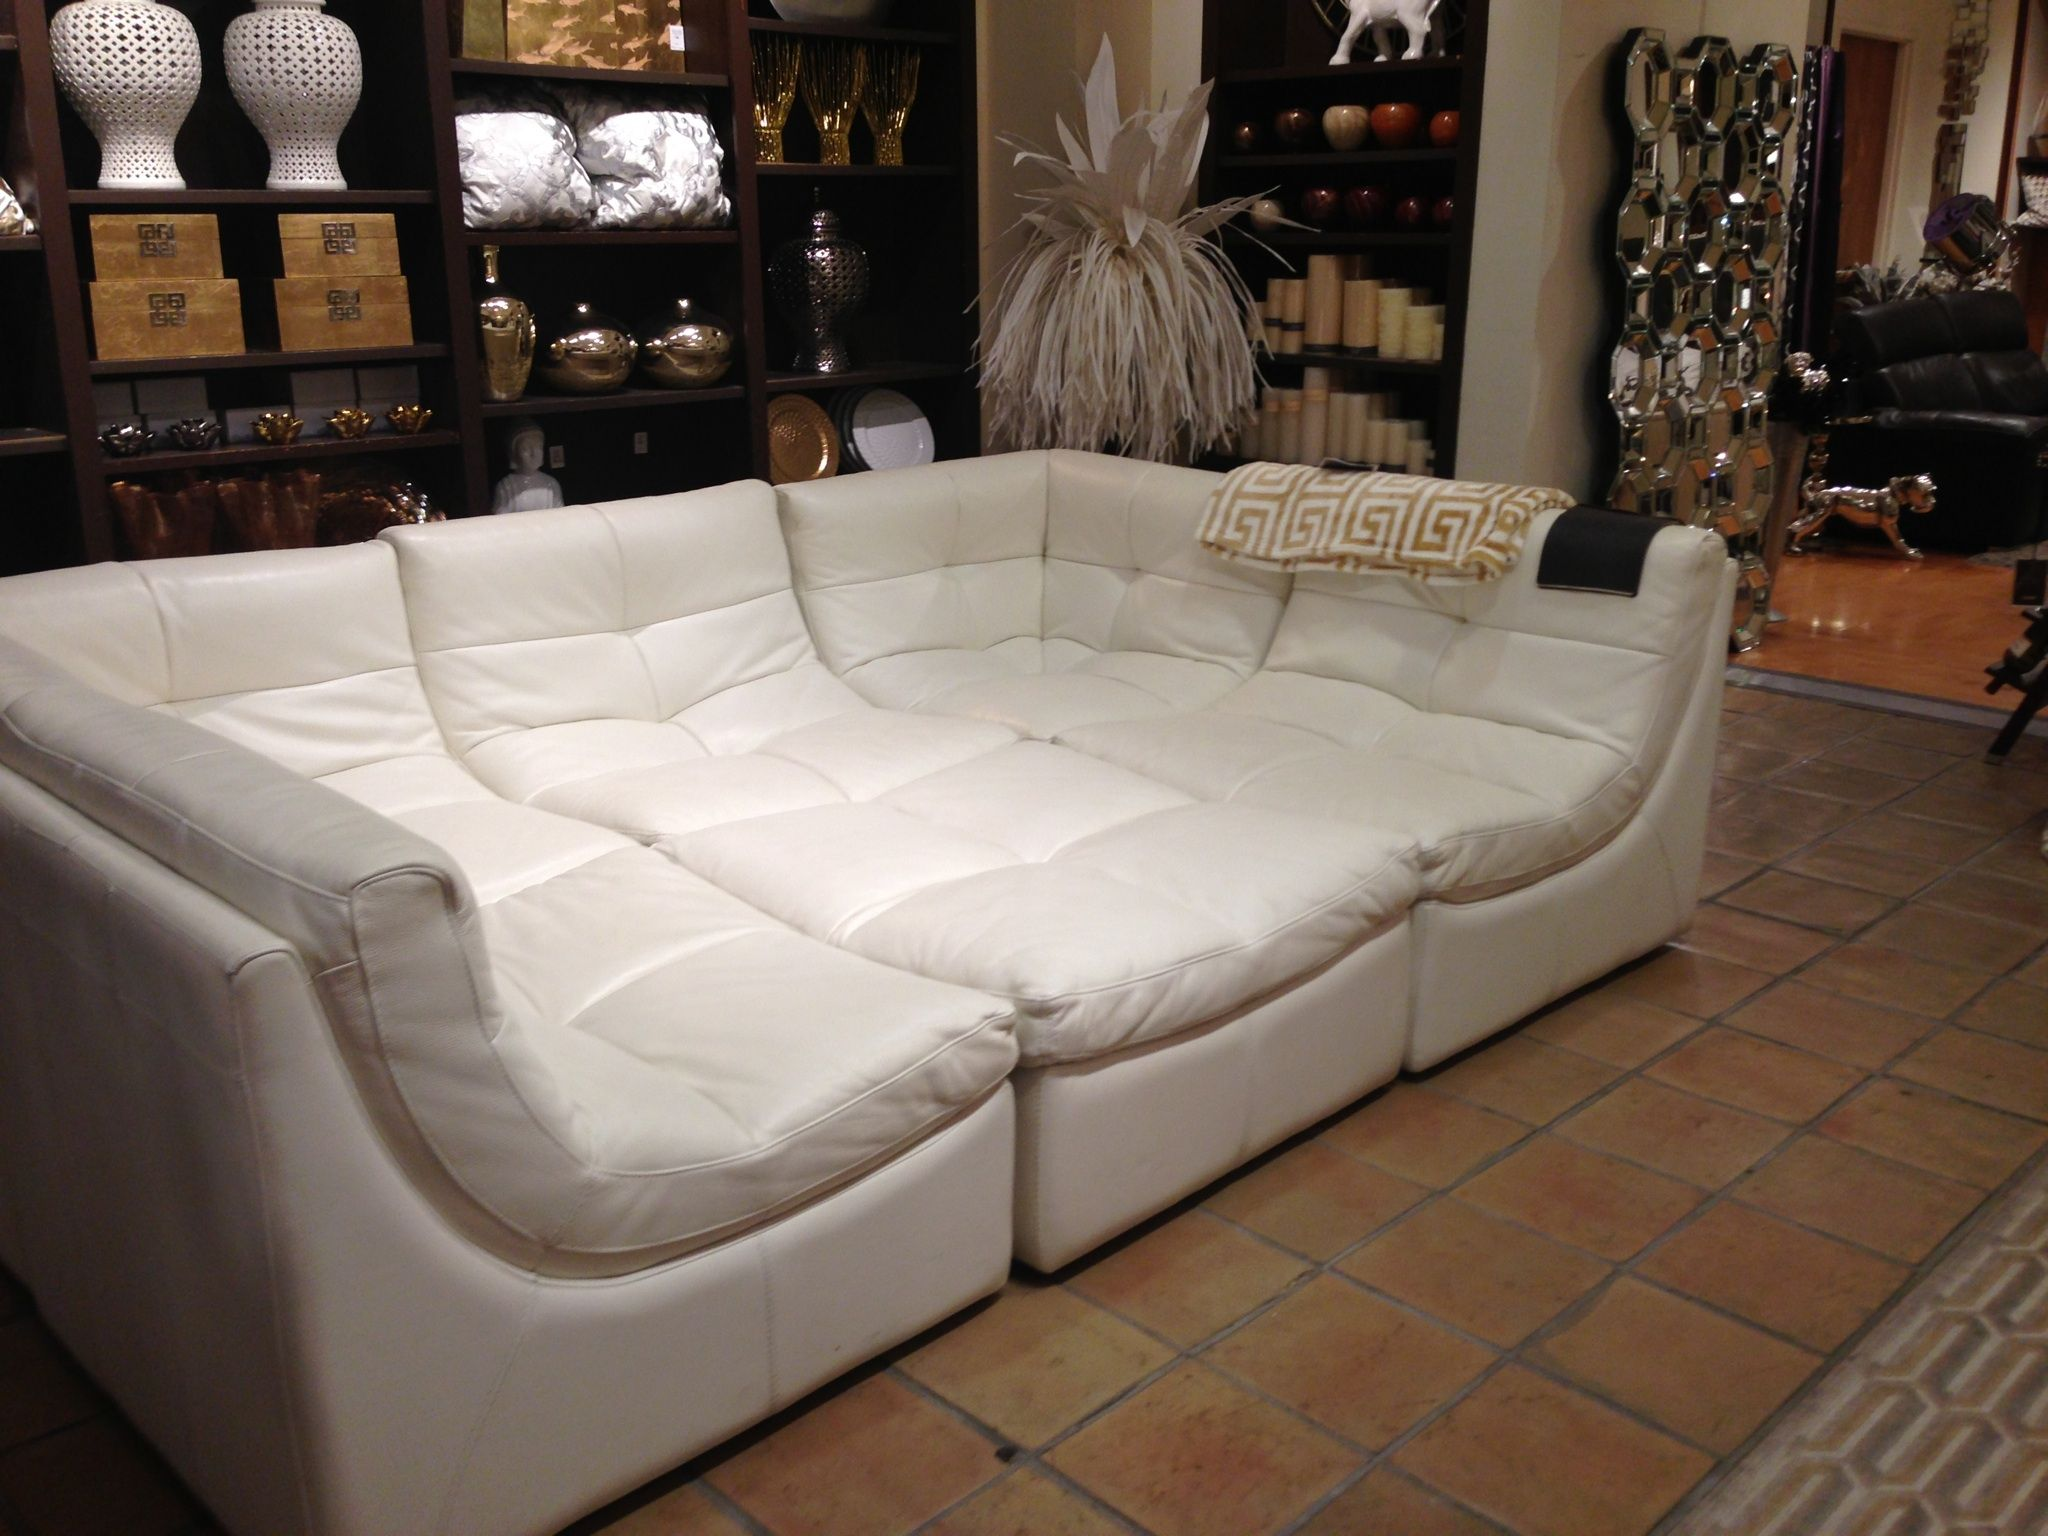 Big comfy oversized chairs couch images pictures for Big comfortable sofas